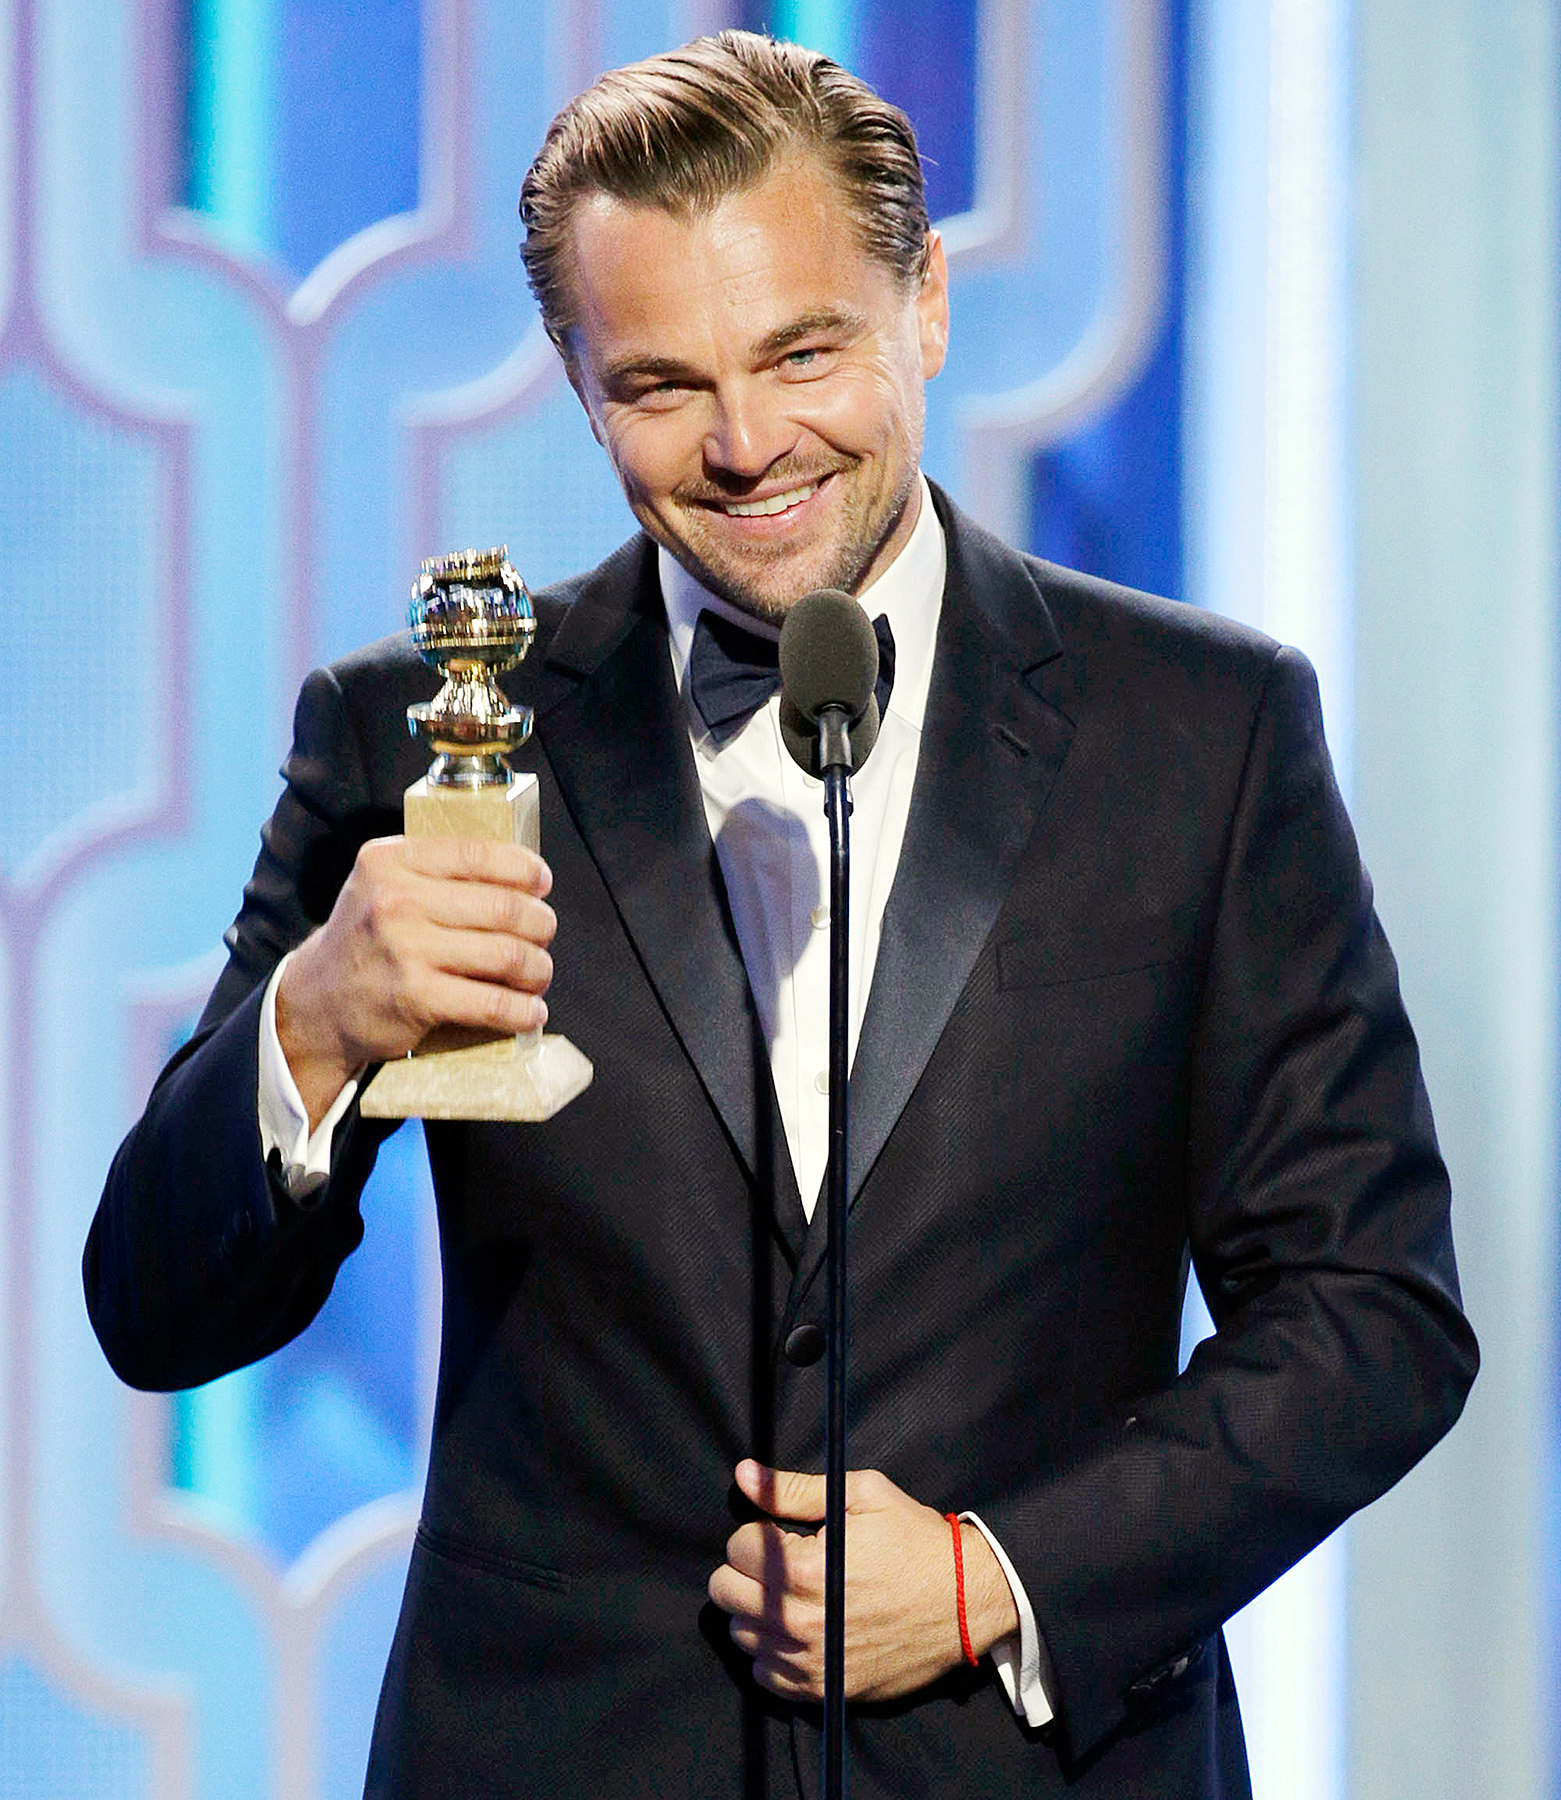 Leonardo DiCaprio on stage at the Golden Globes 2016